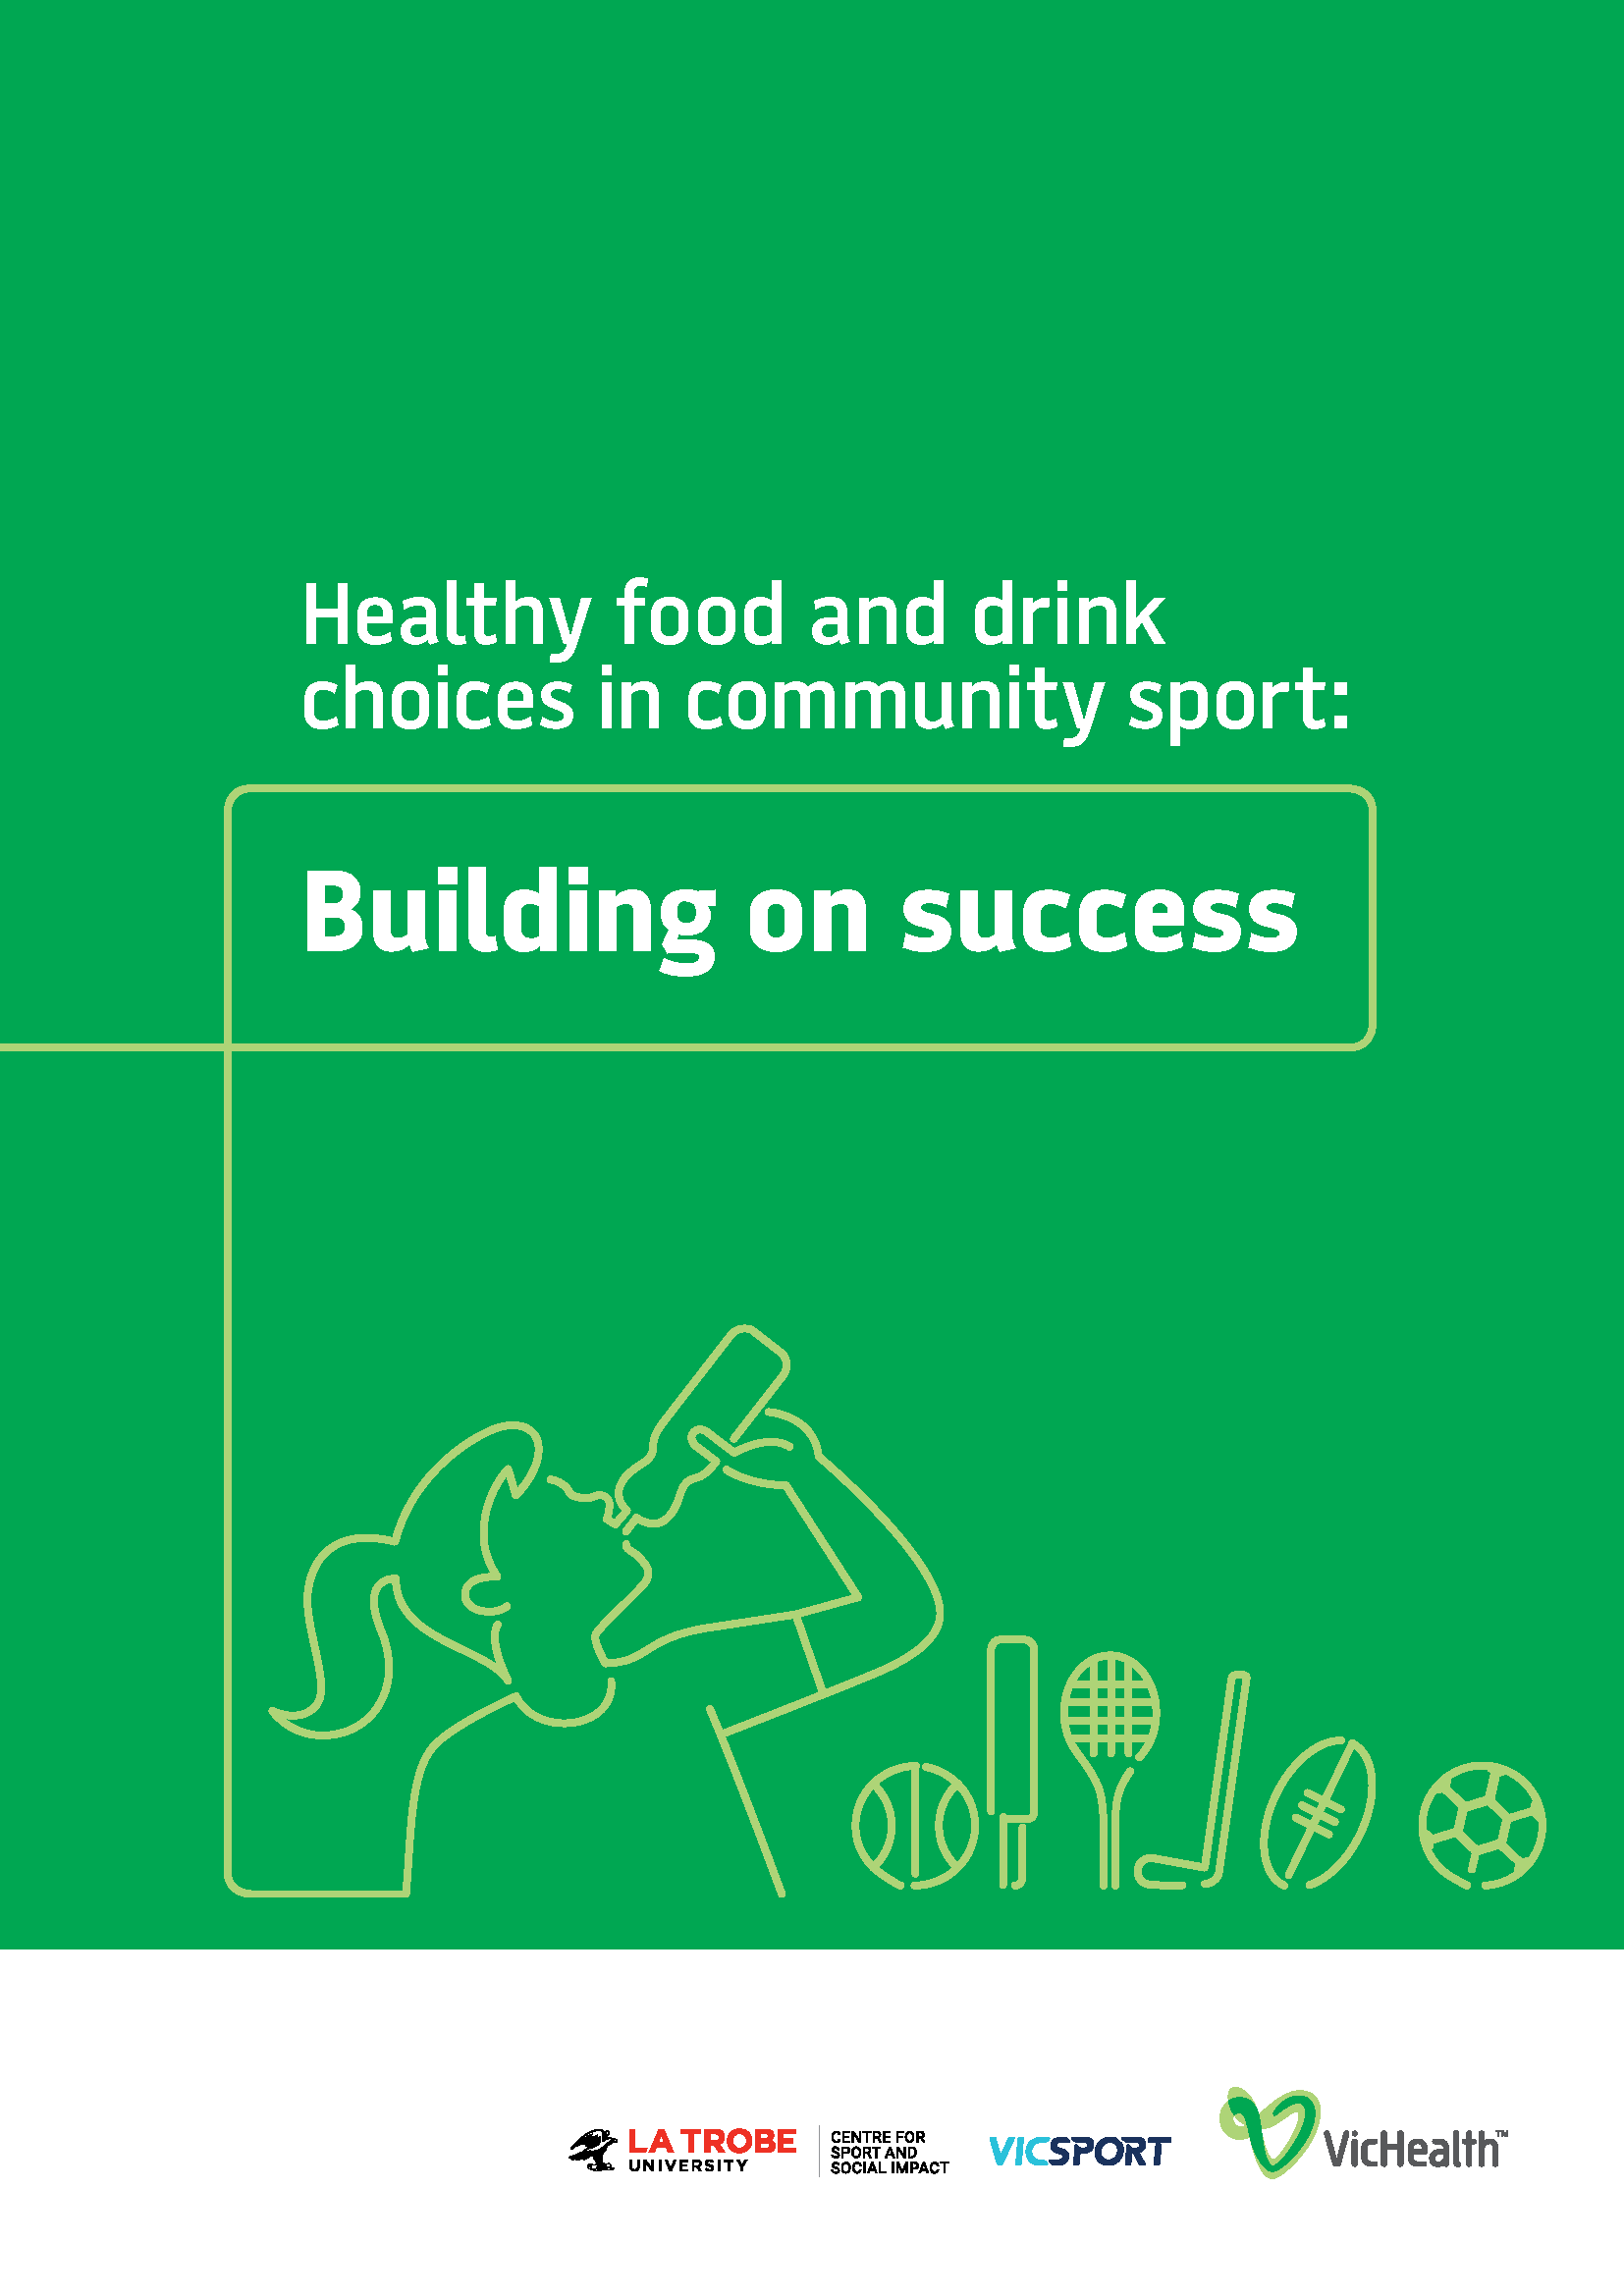 Healthy Food and Drink in Commnity Sport Building on Success